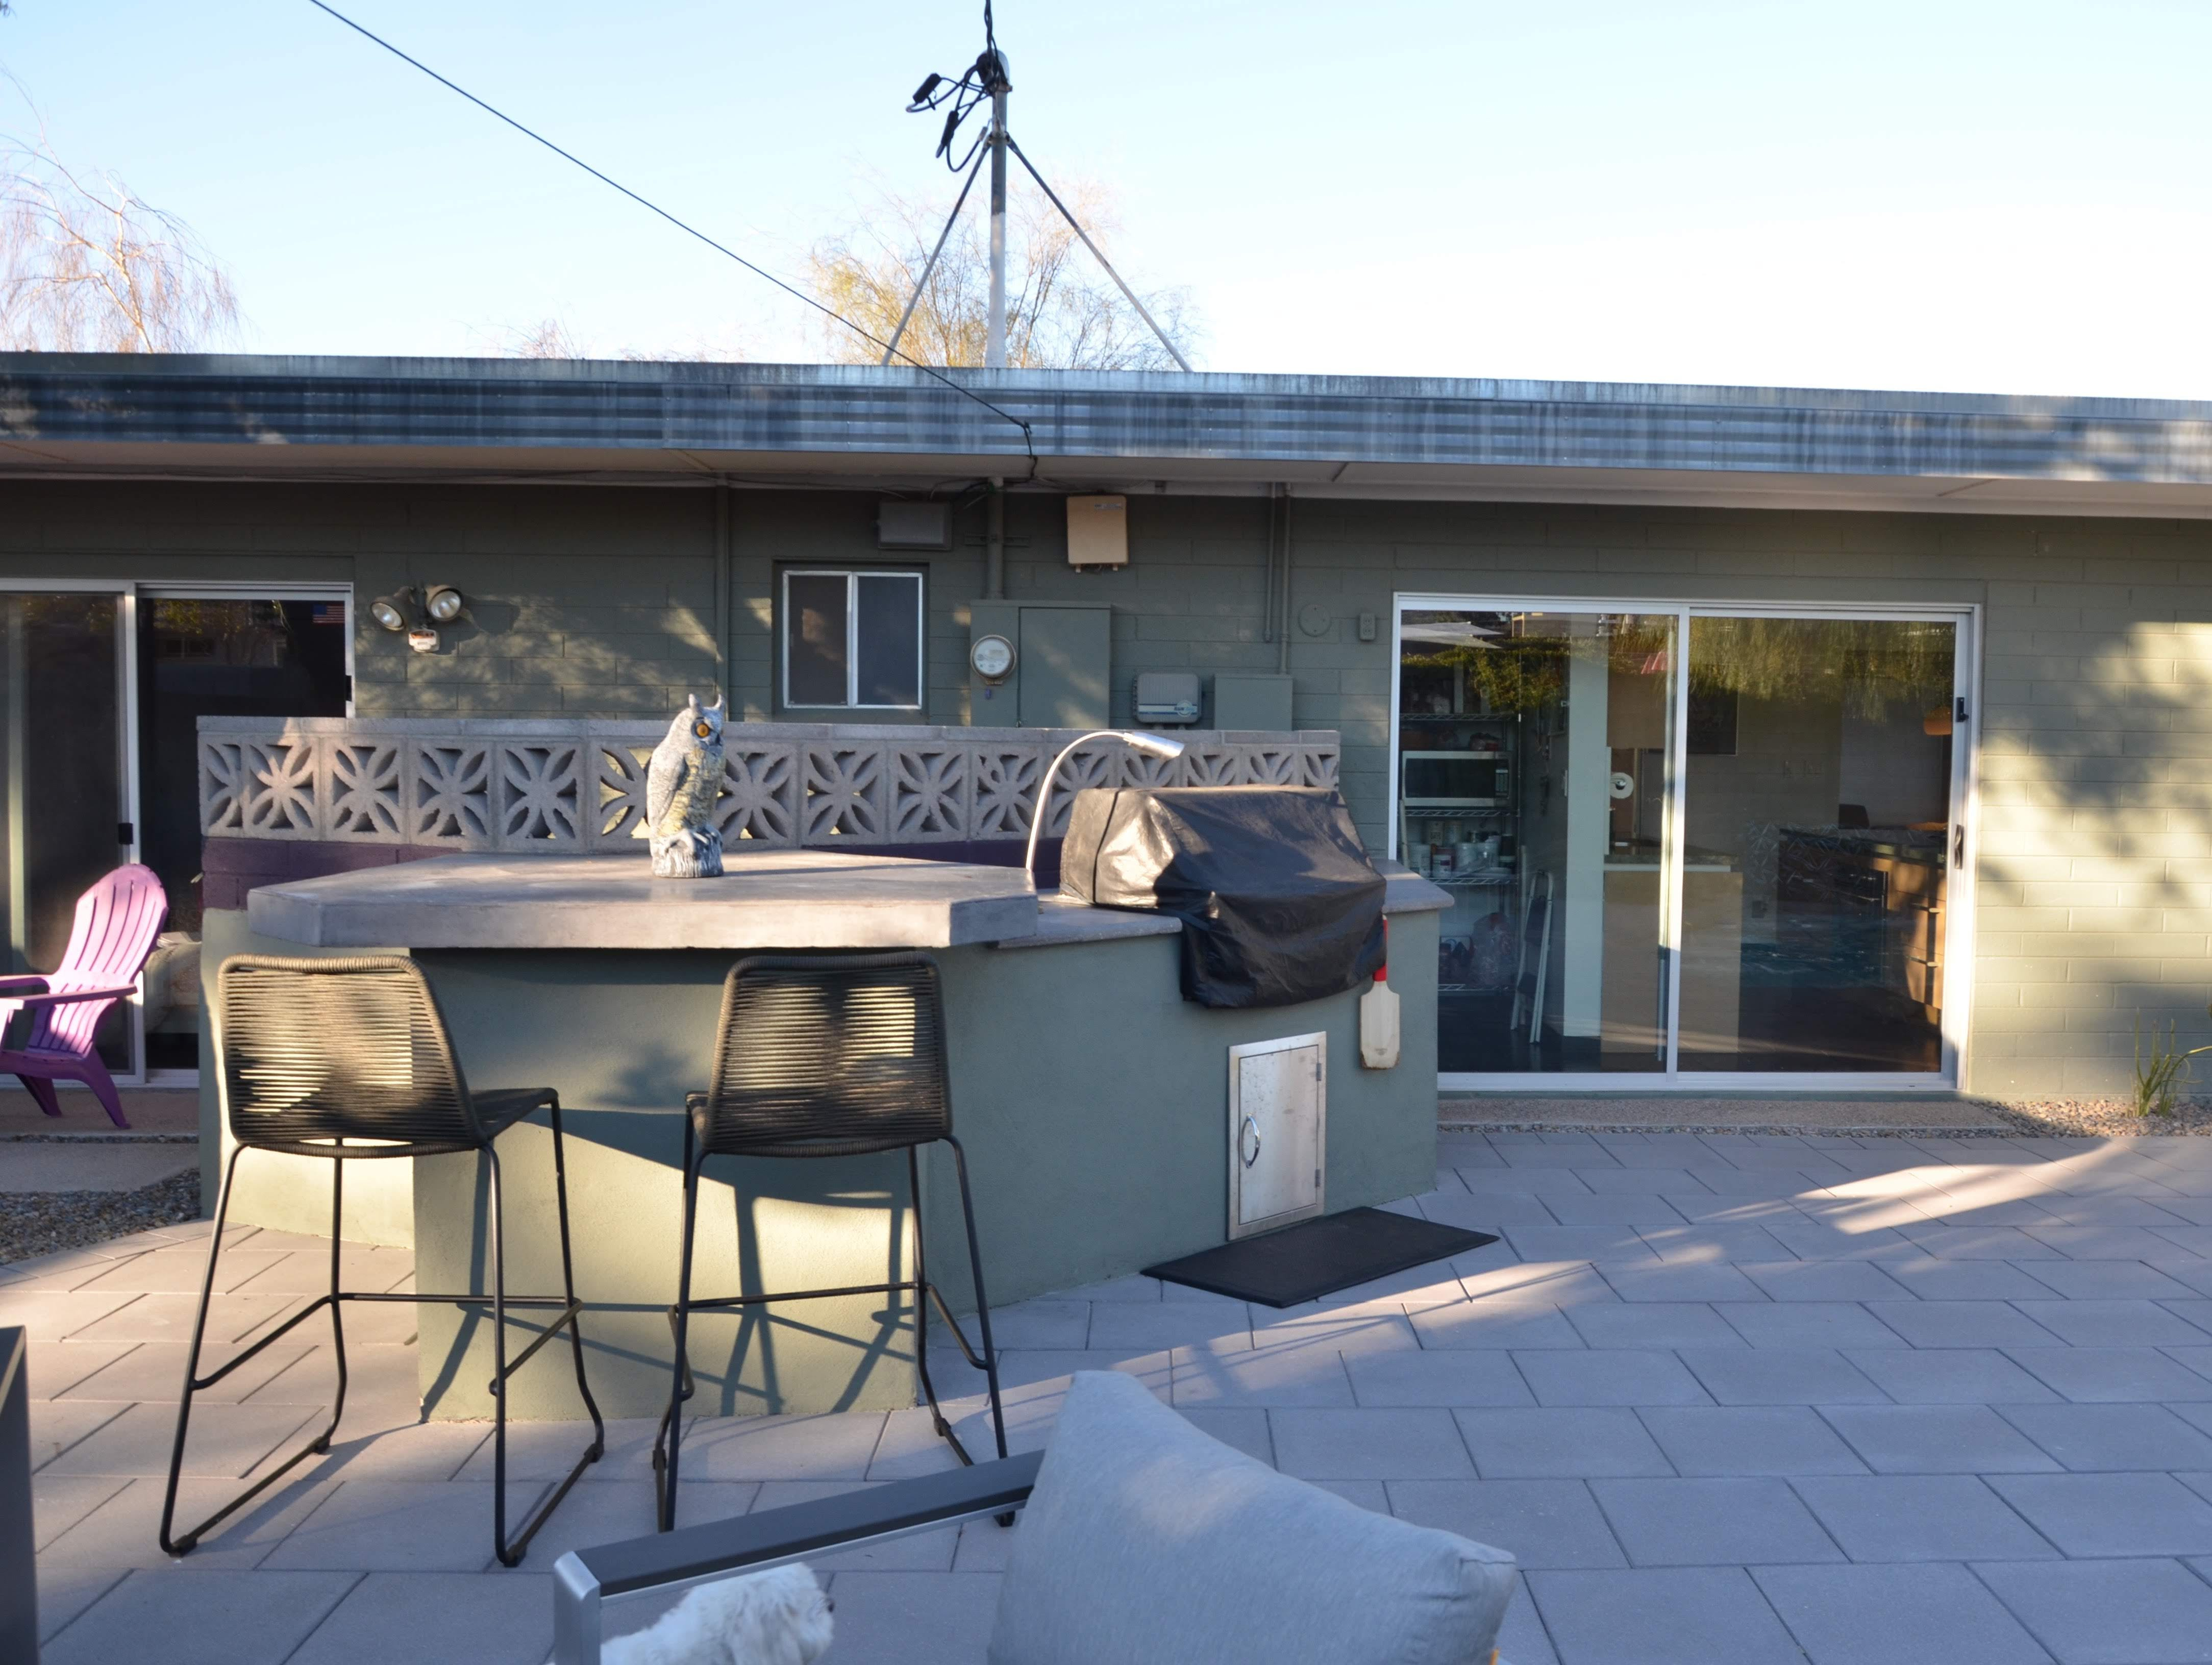 The backyard renovation also included the construction of a custom grilling area just off of the kitchen.